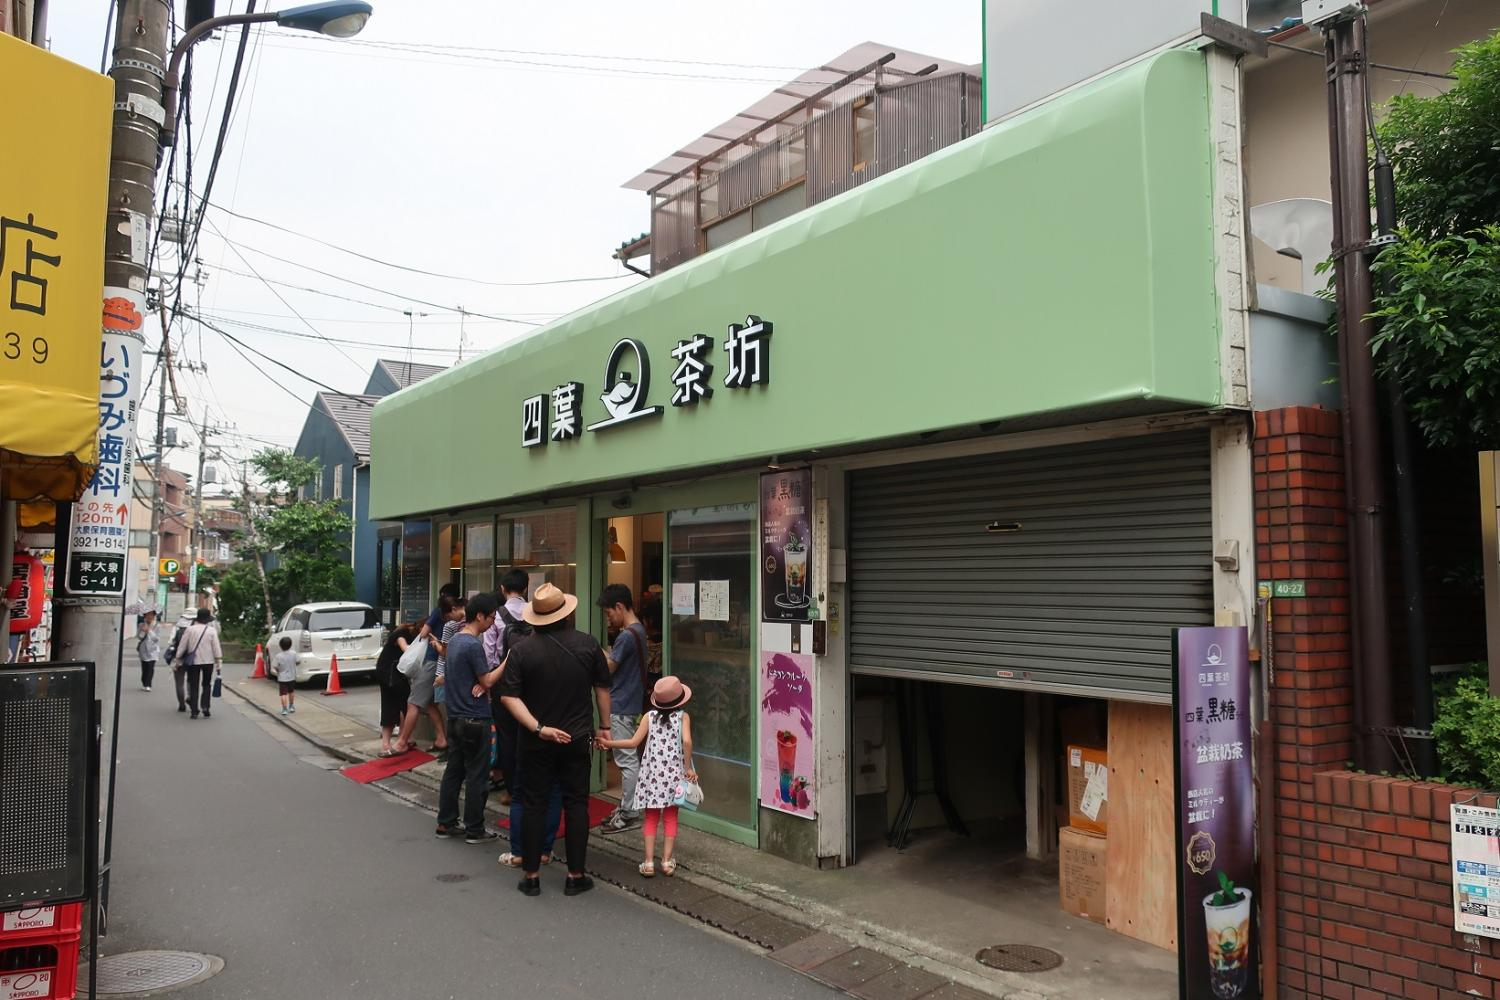 Store specializing in tapioca drinks (the Oizumigakuen station square)